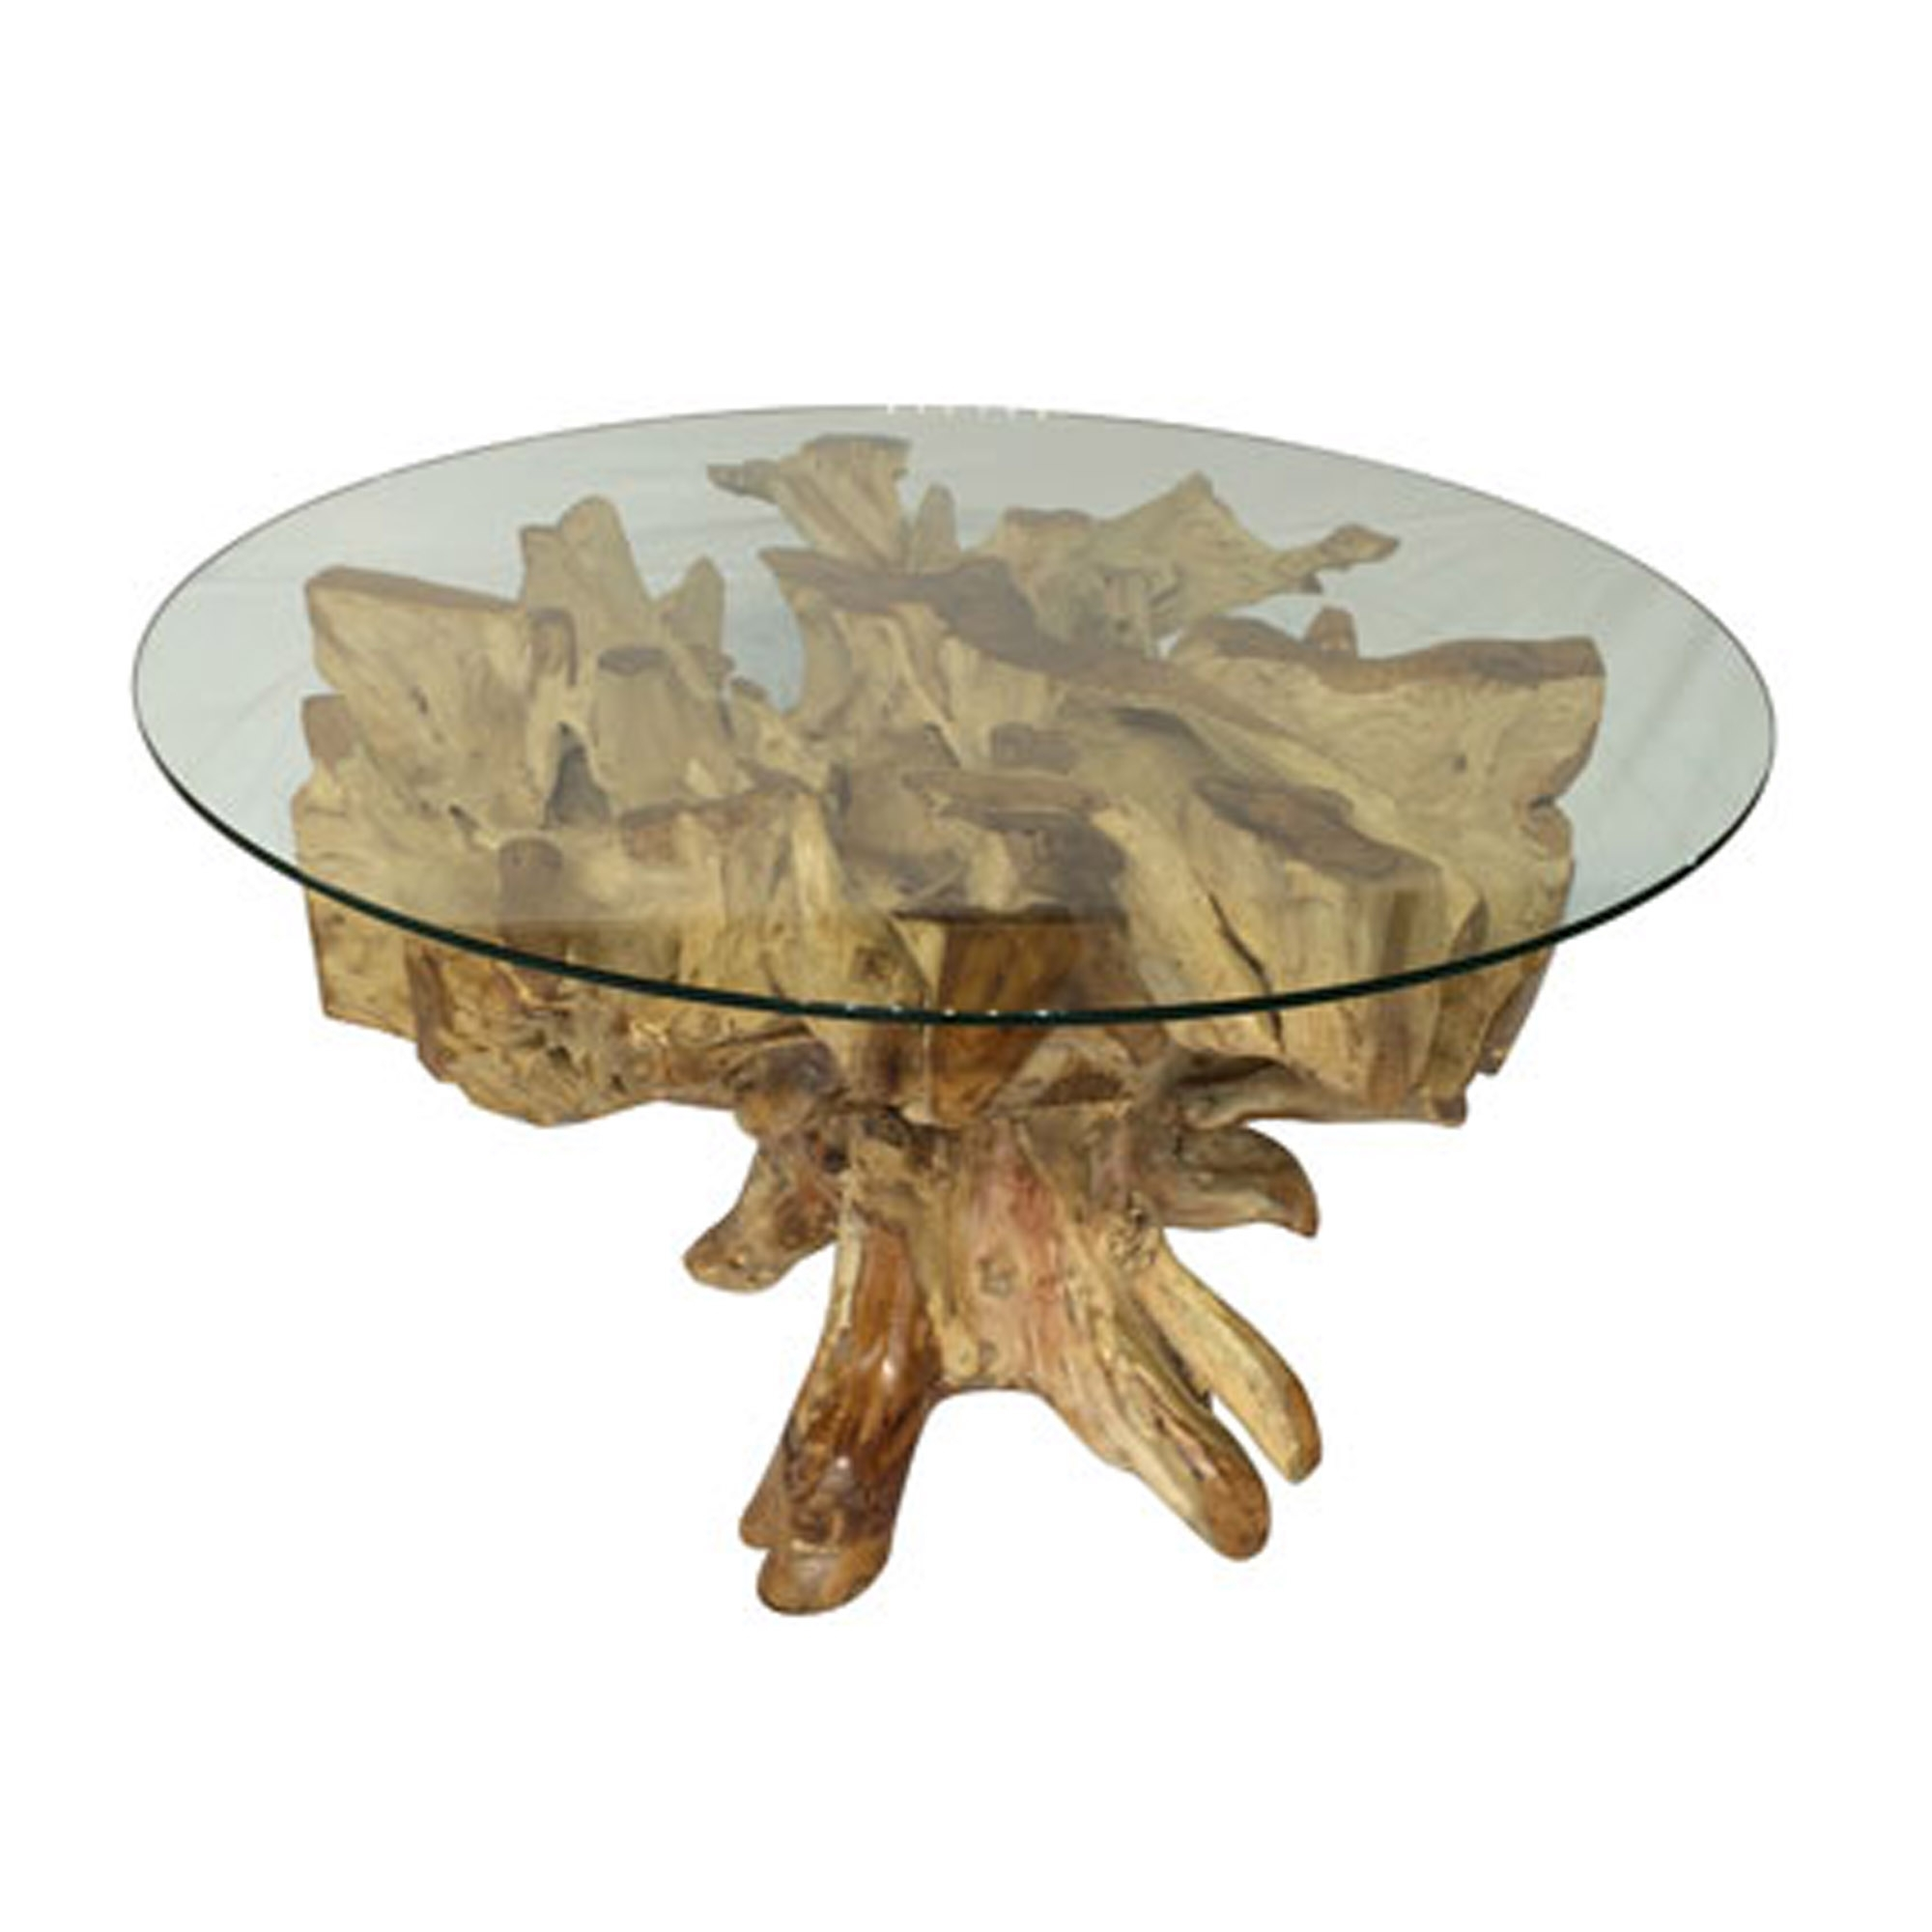 Teak Root Spider Stone Round Glass Dining Table